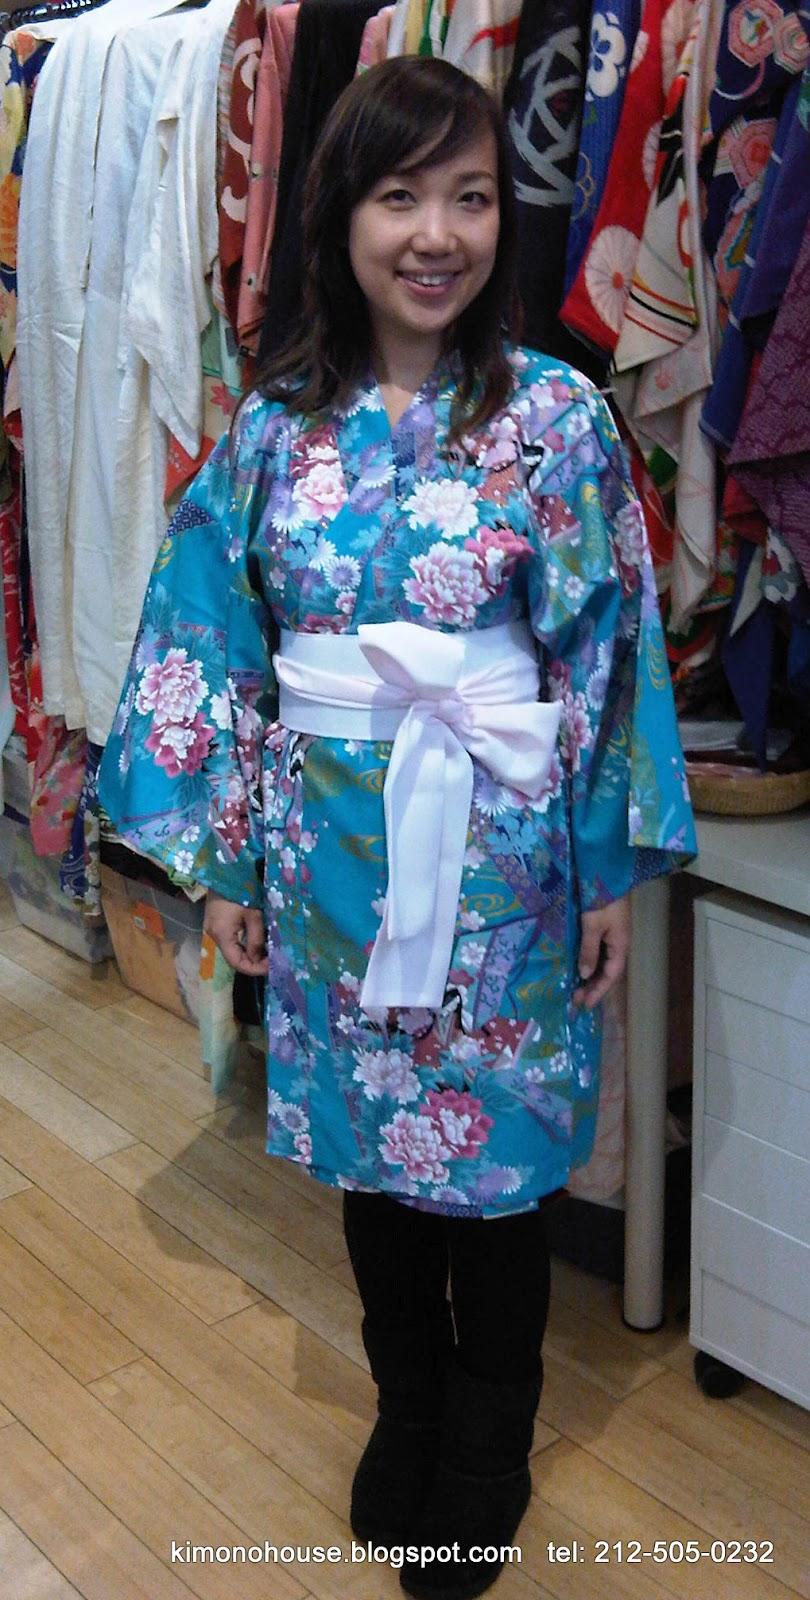 Cute Kimono from Kimono House in New York City